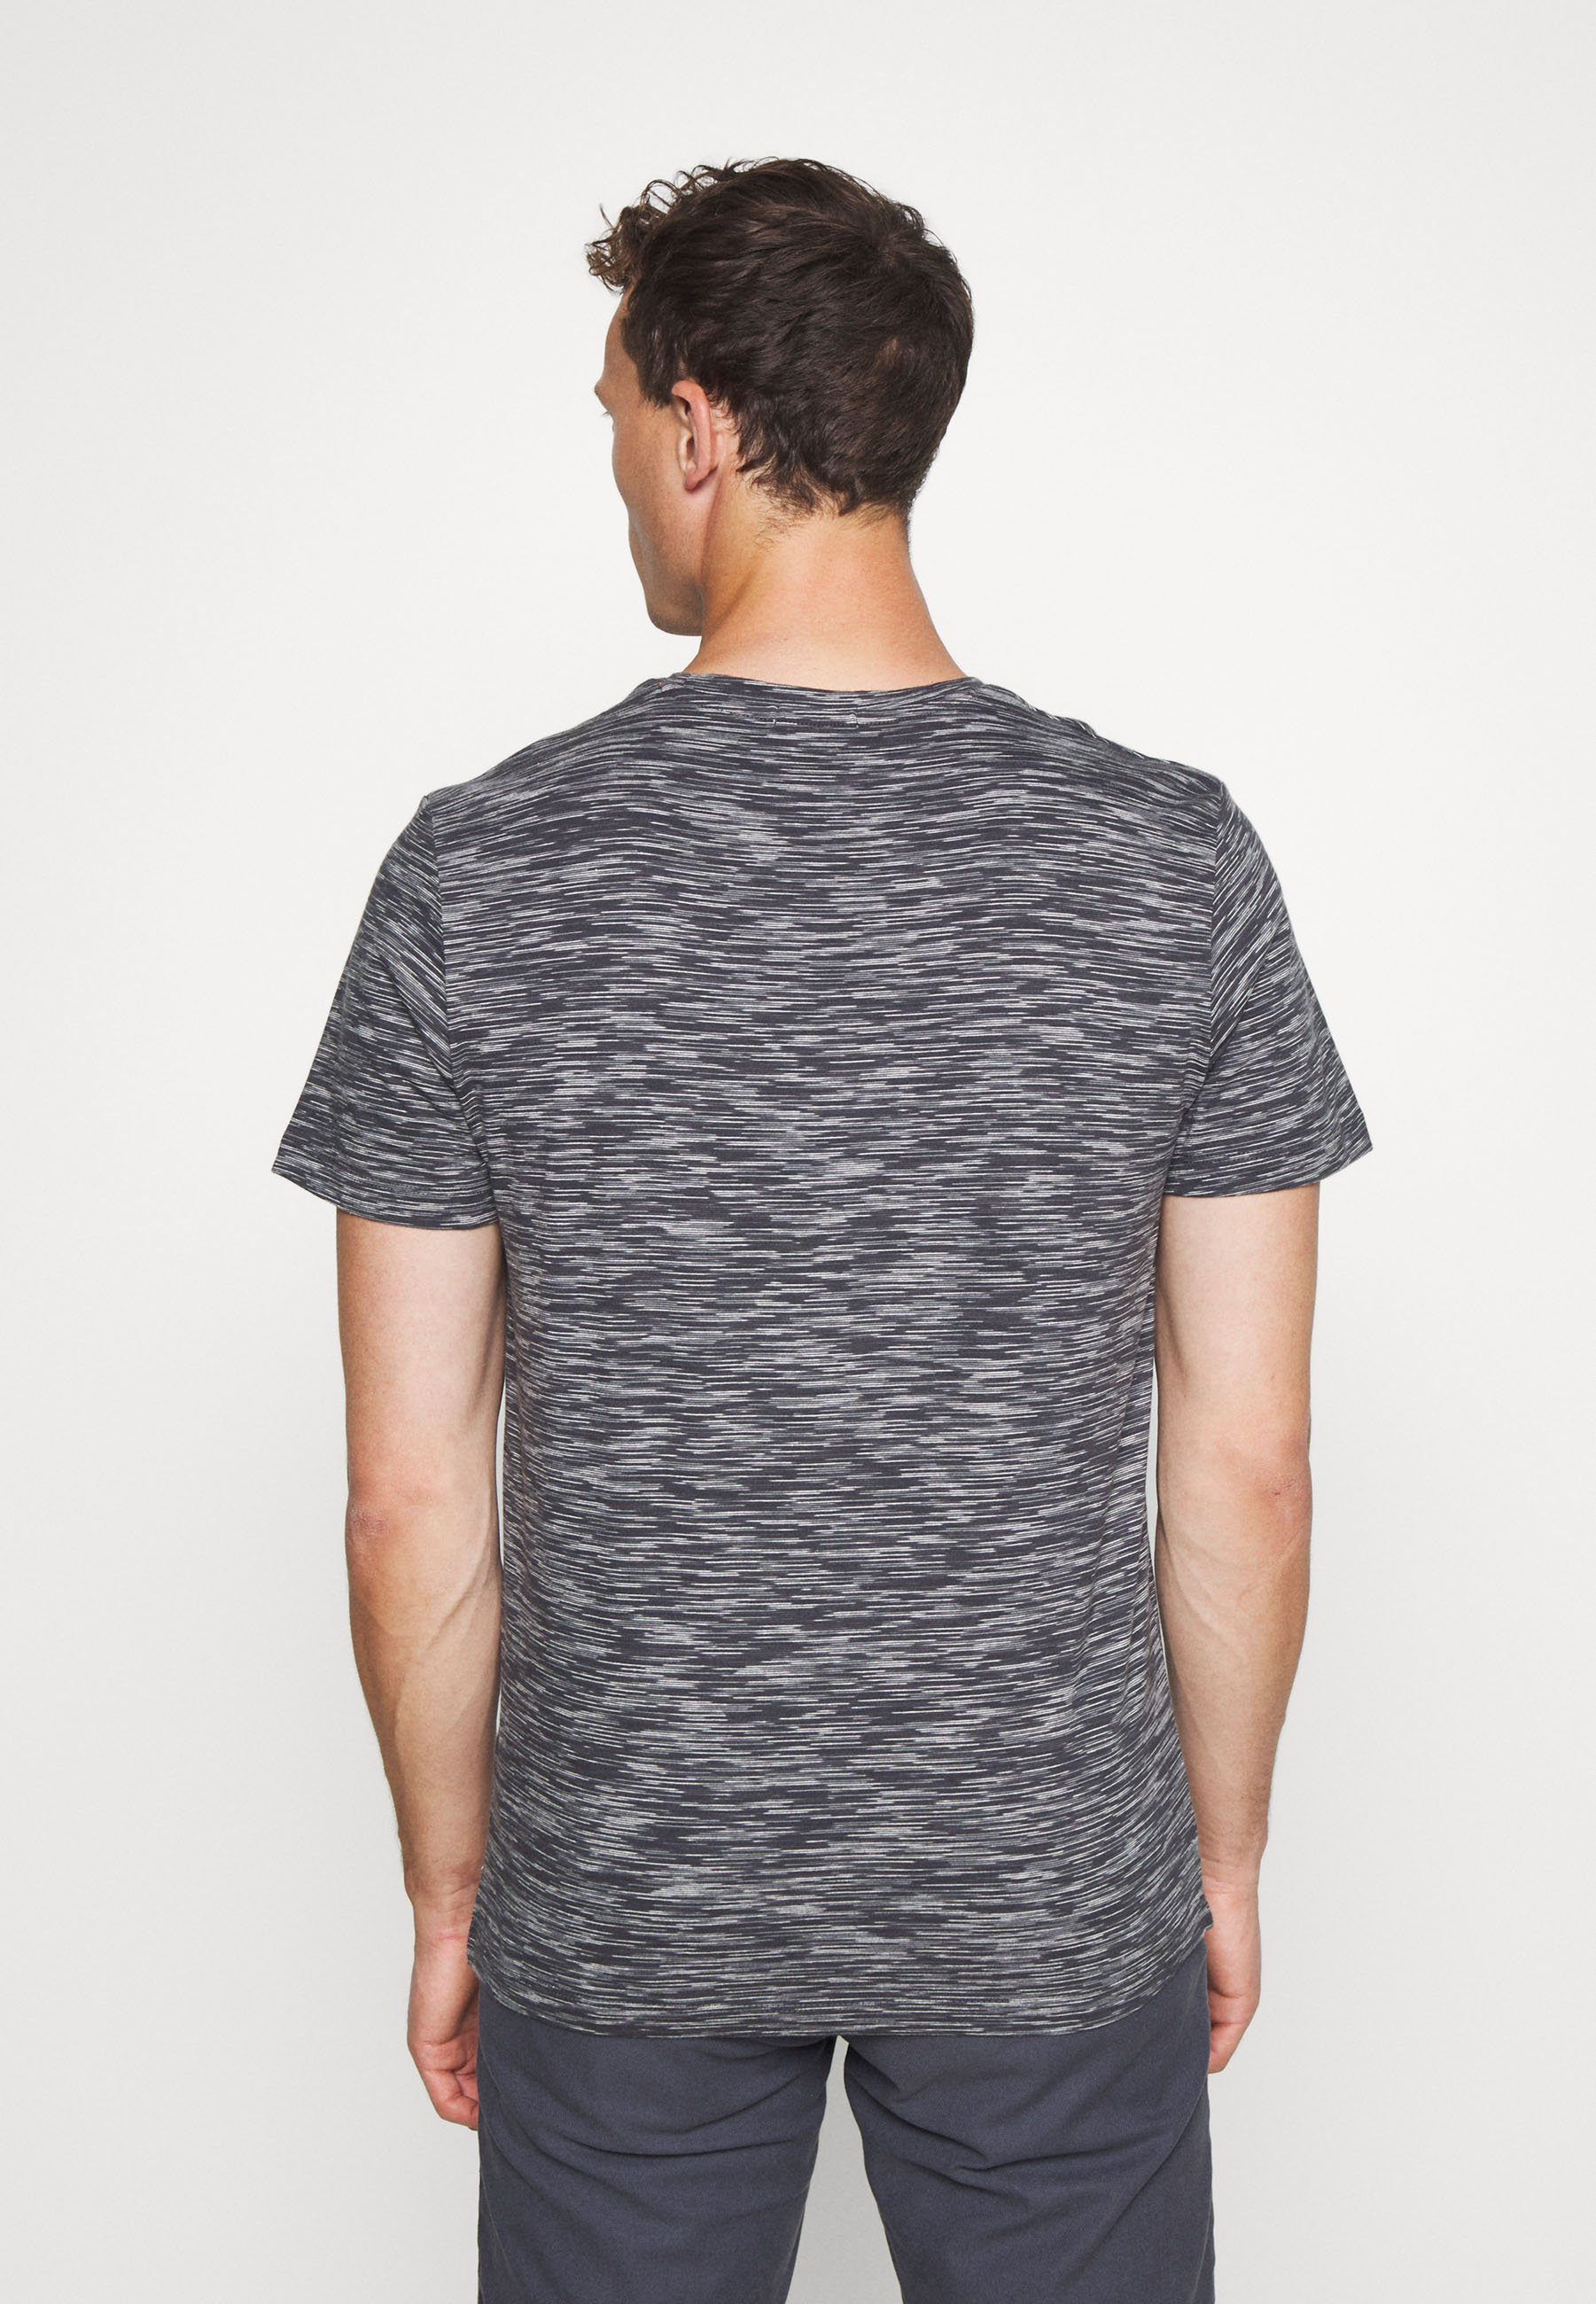 TOM TAILOR Print T-shirt - white space 4GnHt